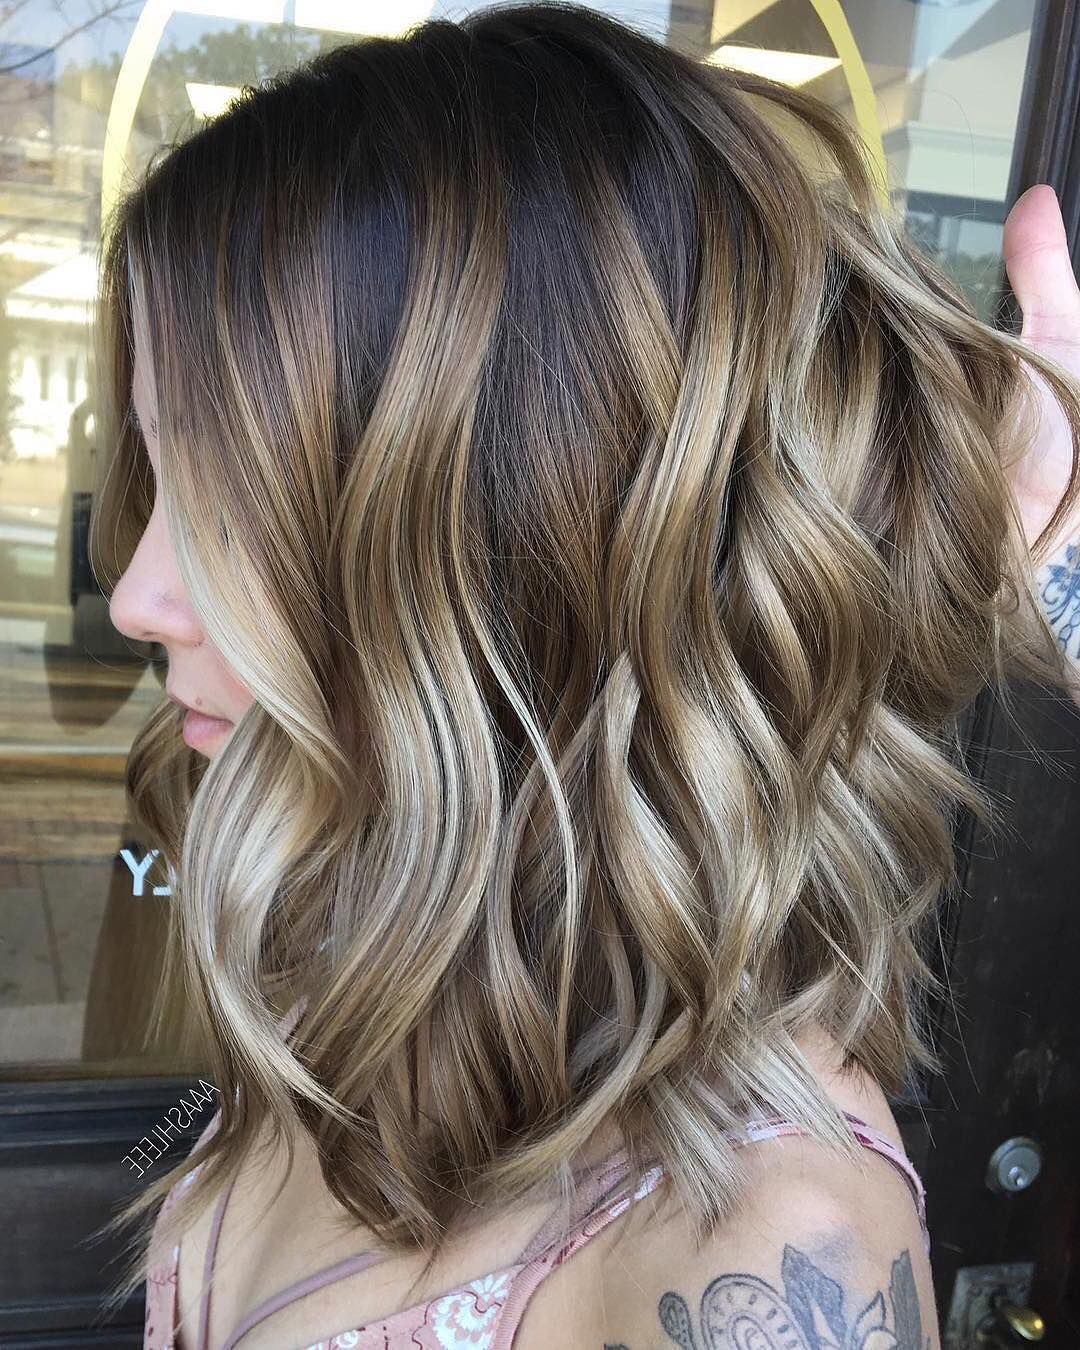 Pretty Balayage Ombre Hair Styles For Shoulder Length Hair Medium Haircut Color Ideas Spring Hair Color Hair Styles Thick Hair Styles